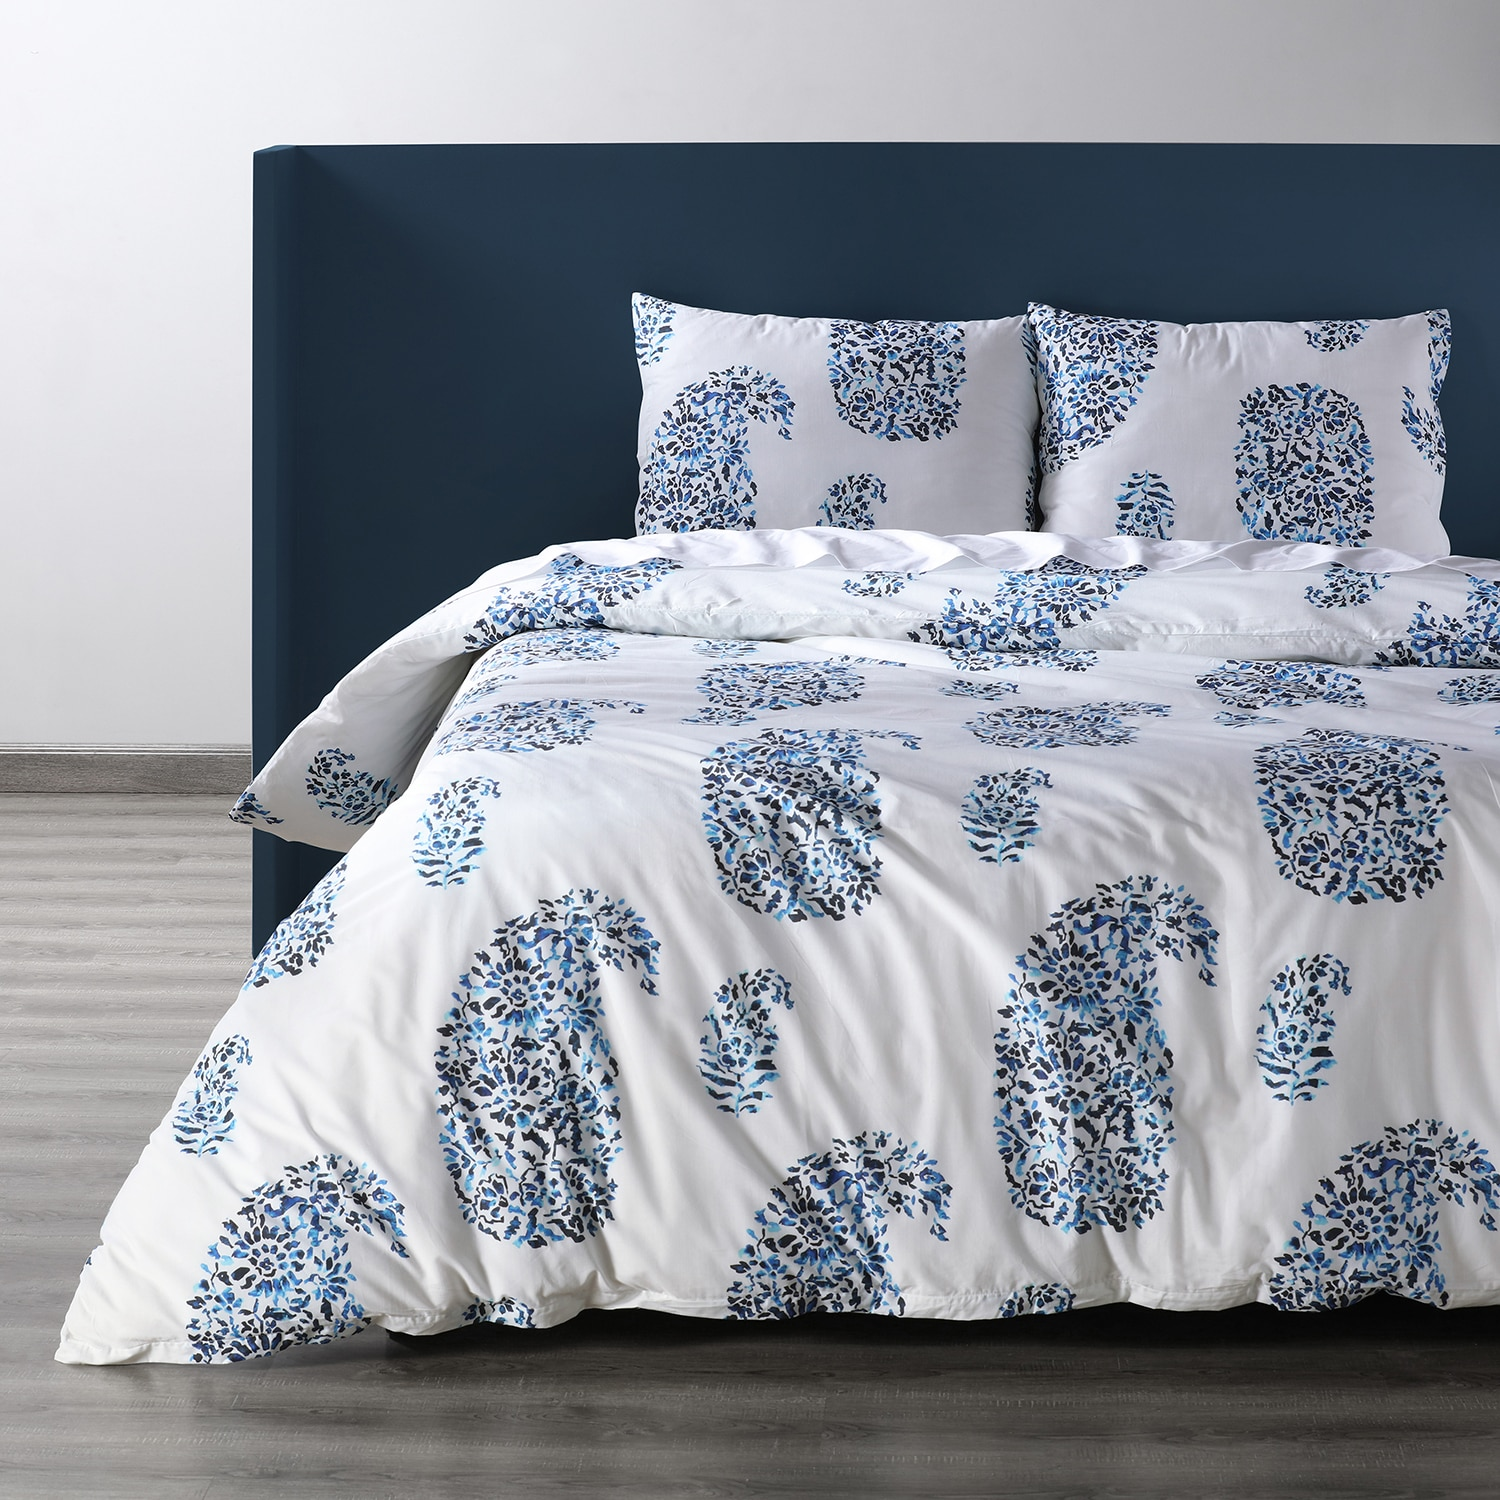 Paisley Park Blue Cotton Percale Printed Duvet Cover Set